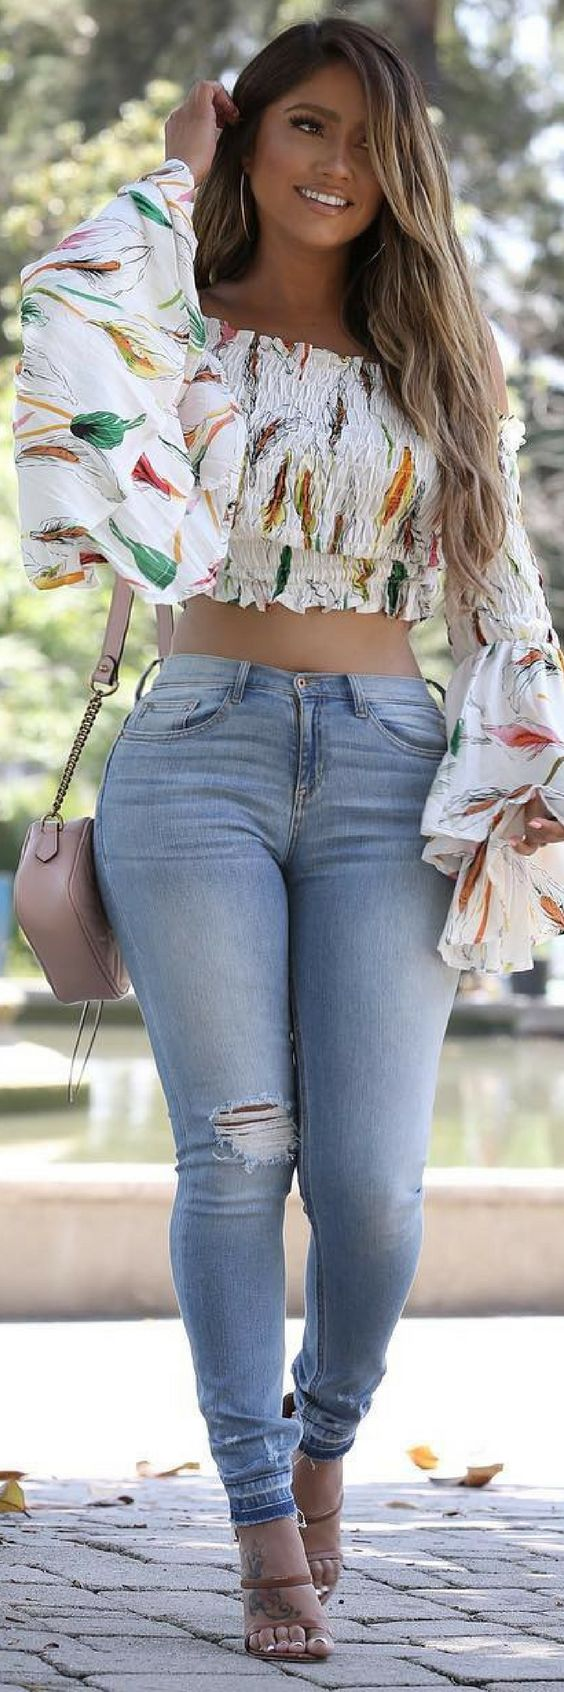 SUMMER TIME GLOW // Summer Outfit Idea by Jessica Burciaga